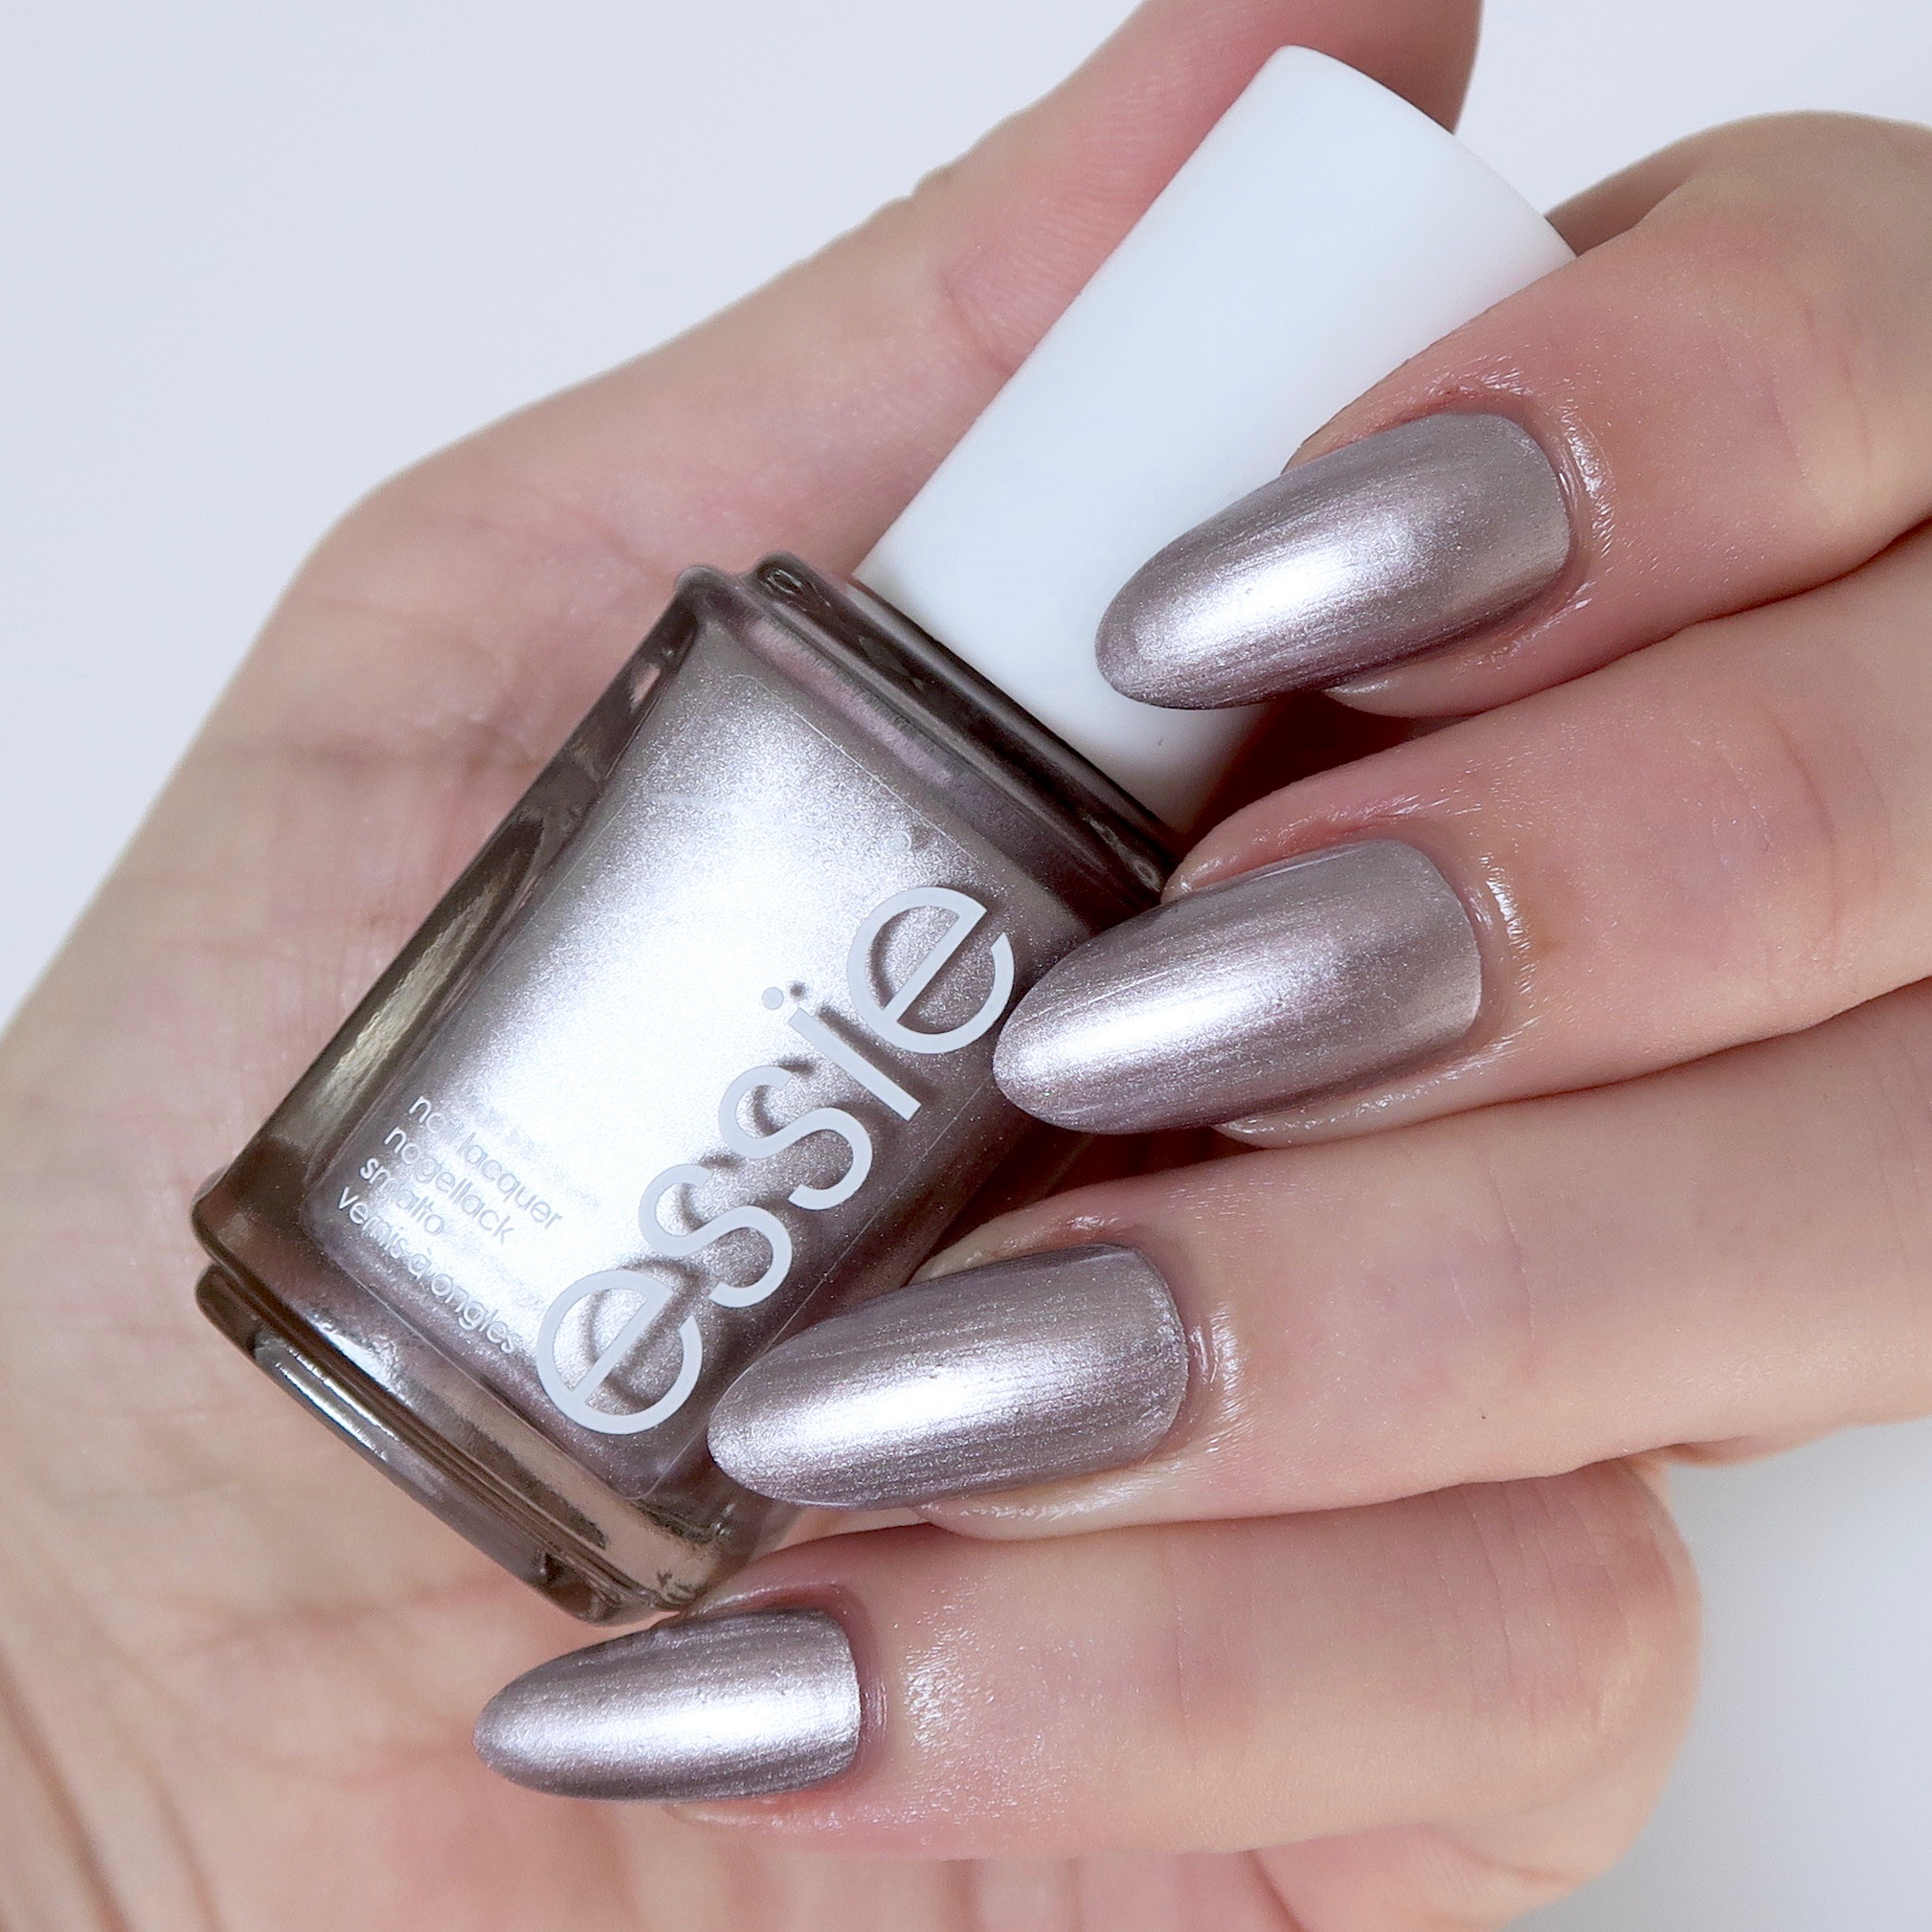 essie-galaxy-metals-out-of-this-world-2 - talonted lex